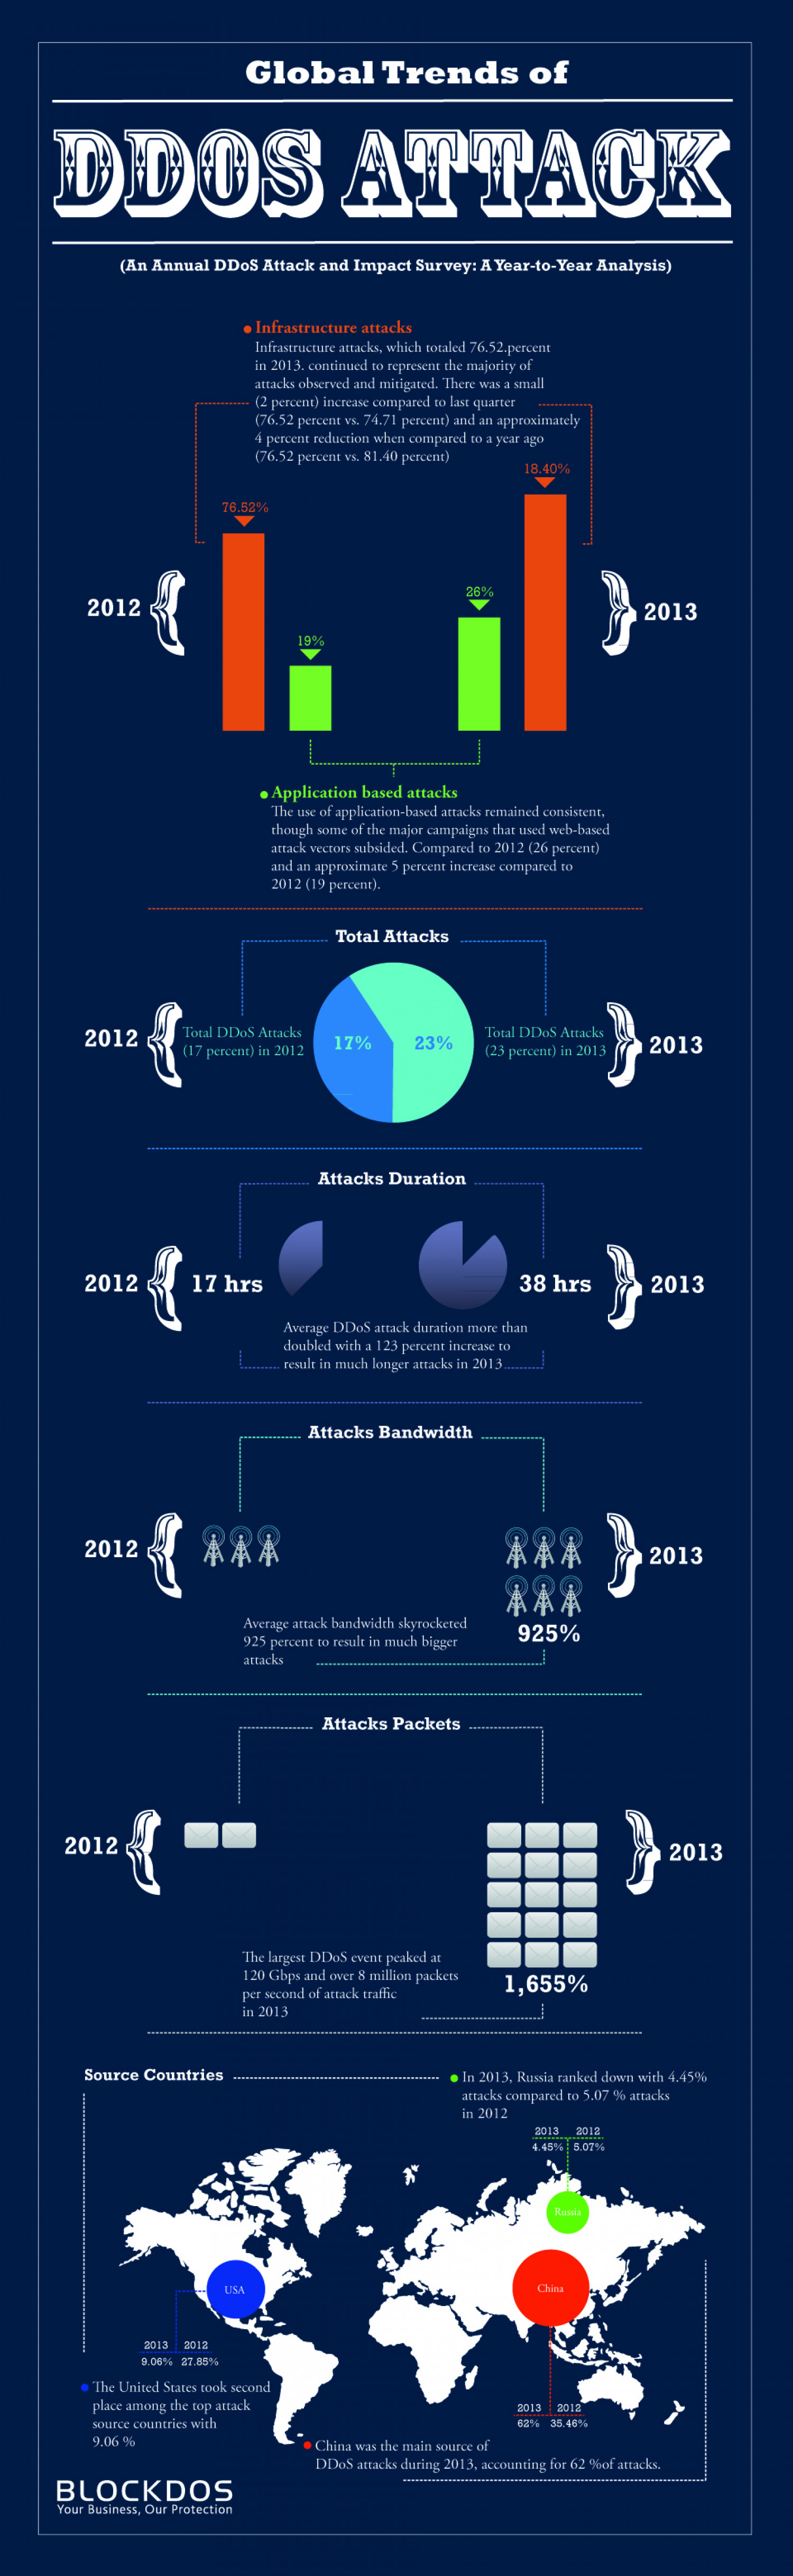 Global Trends of DDoS Attacks Infographic